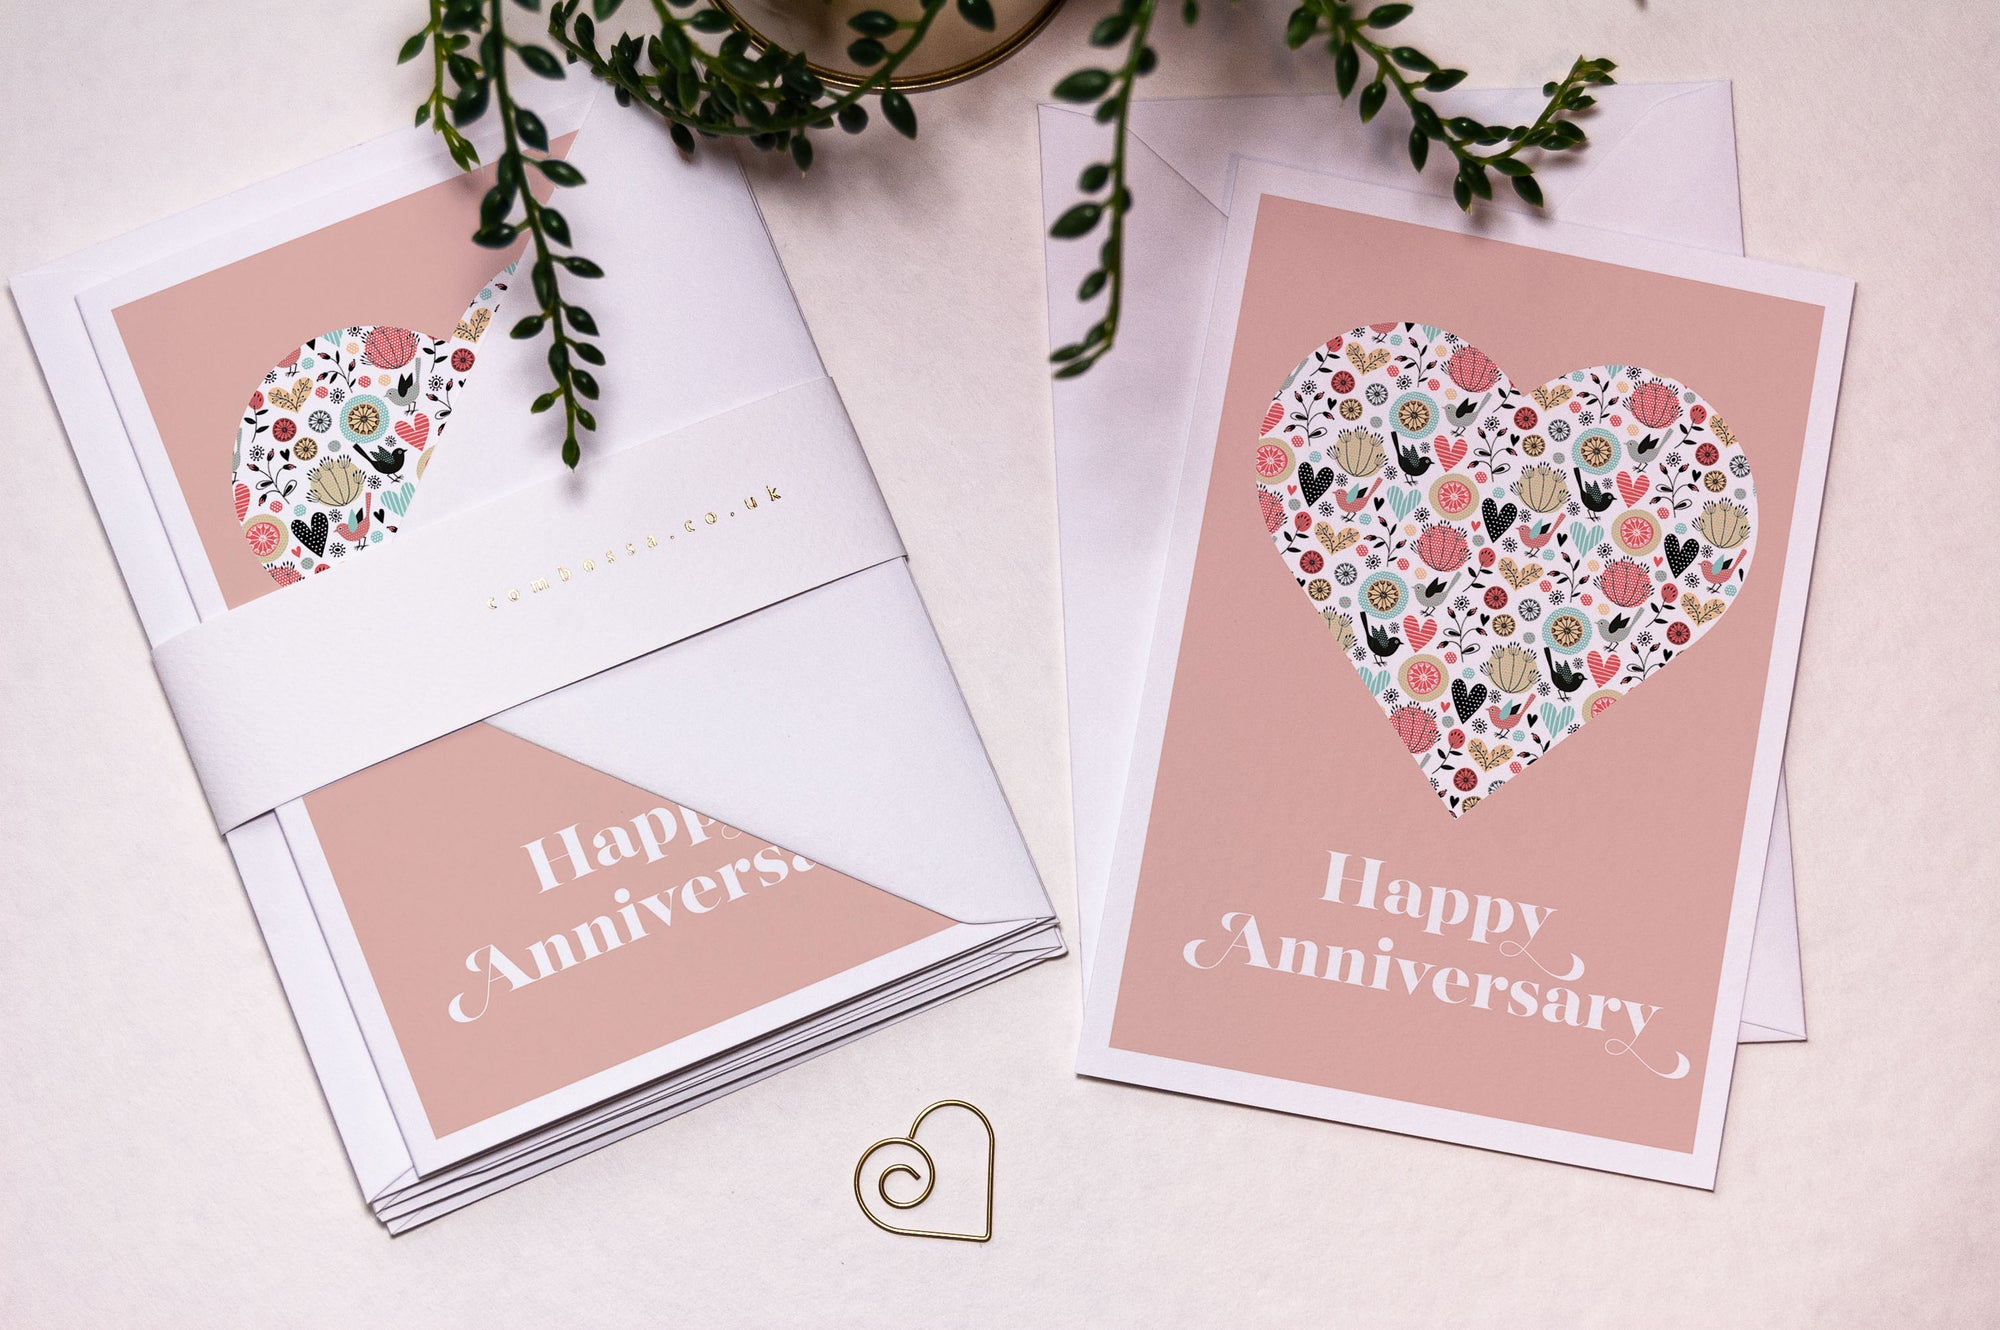 Heart Happy Anniversary Card - Blush